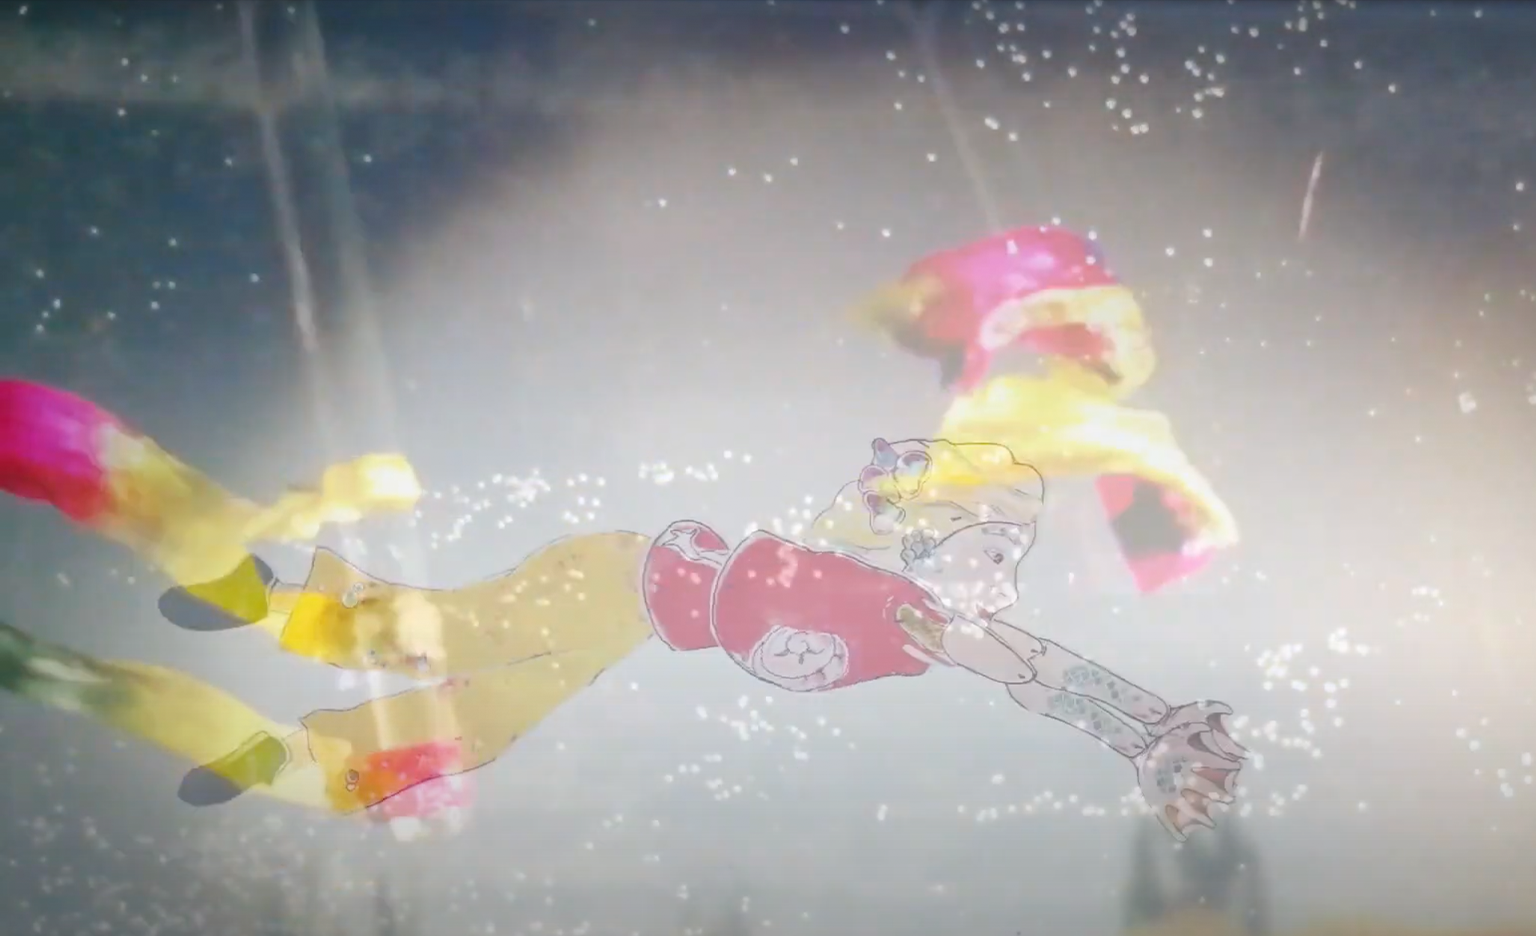 A still from a stop-motion animation video. A young white woman with long blonde hair, a red top and yellow trousers swims underwater. Fish puppets swim around her.